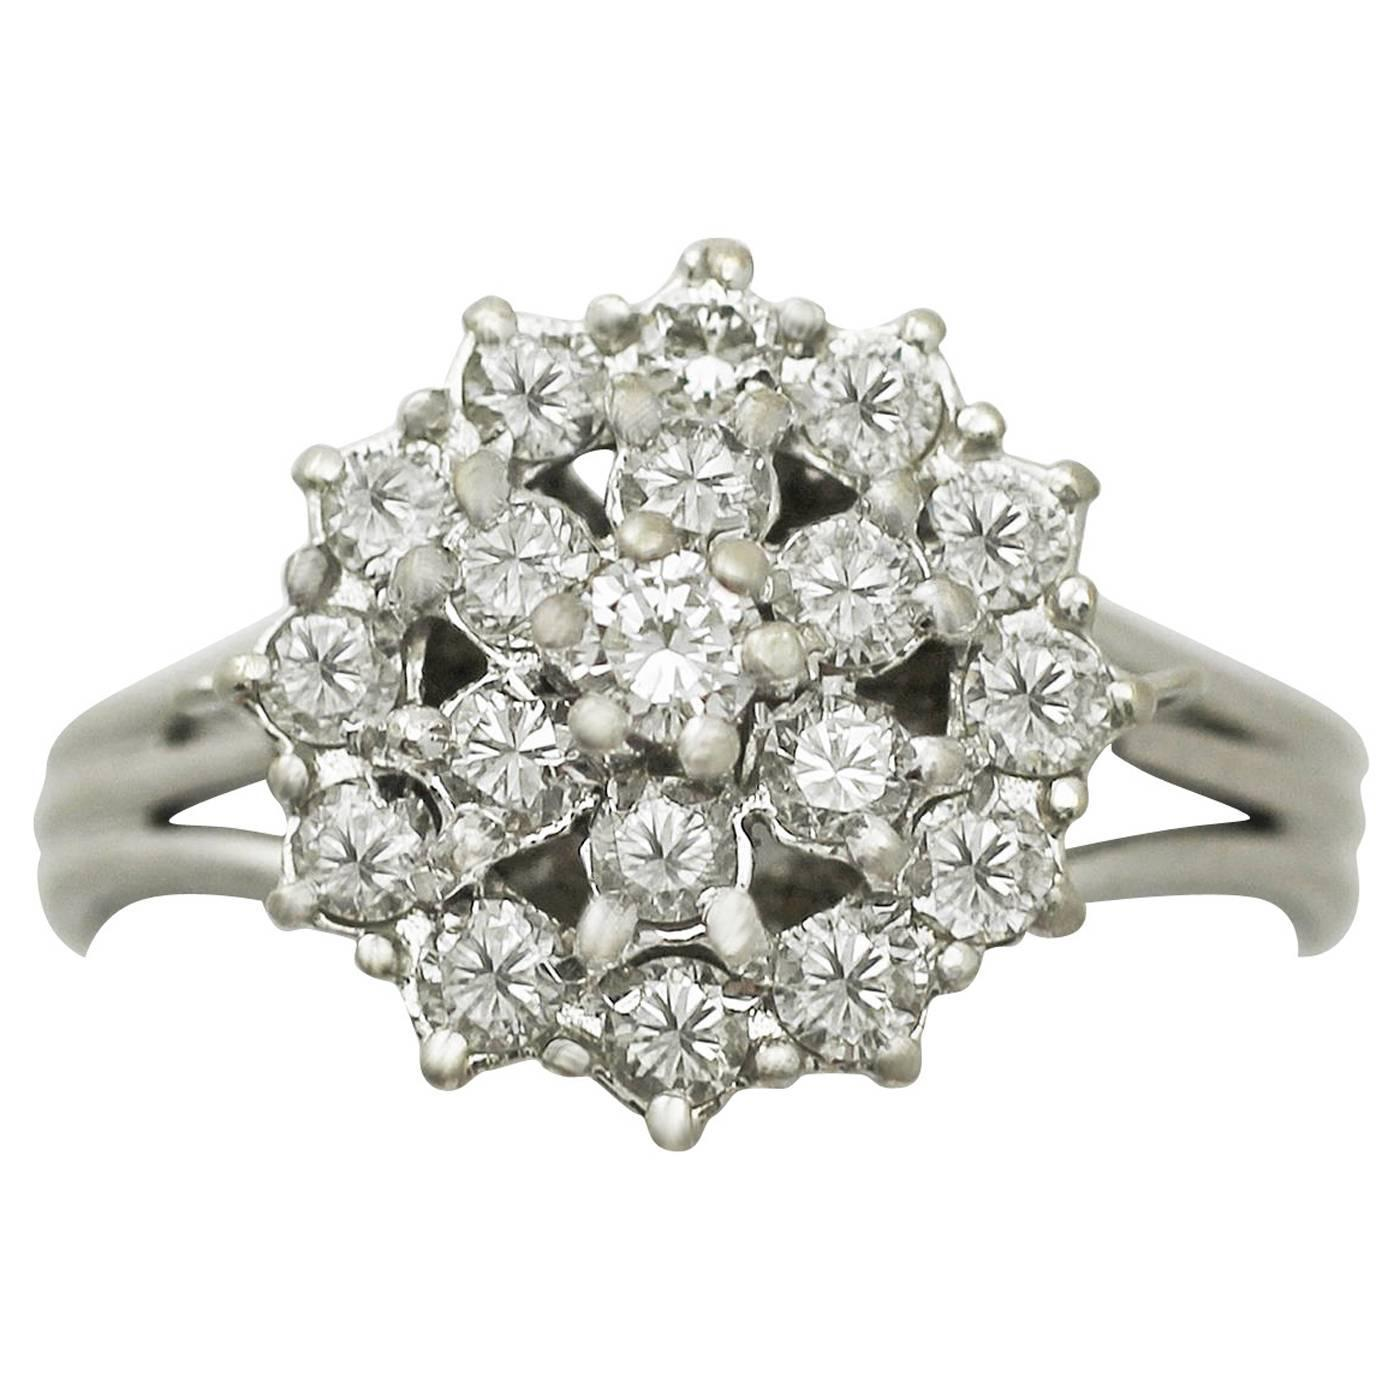 075ct Diamond And 18k White Gold Cluster Ring  Vintage Circa 1960 For  Sale At 1stdibs